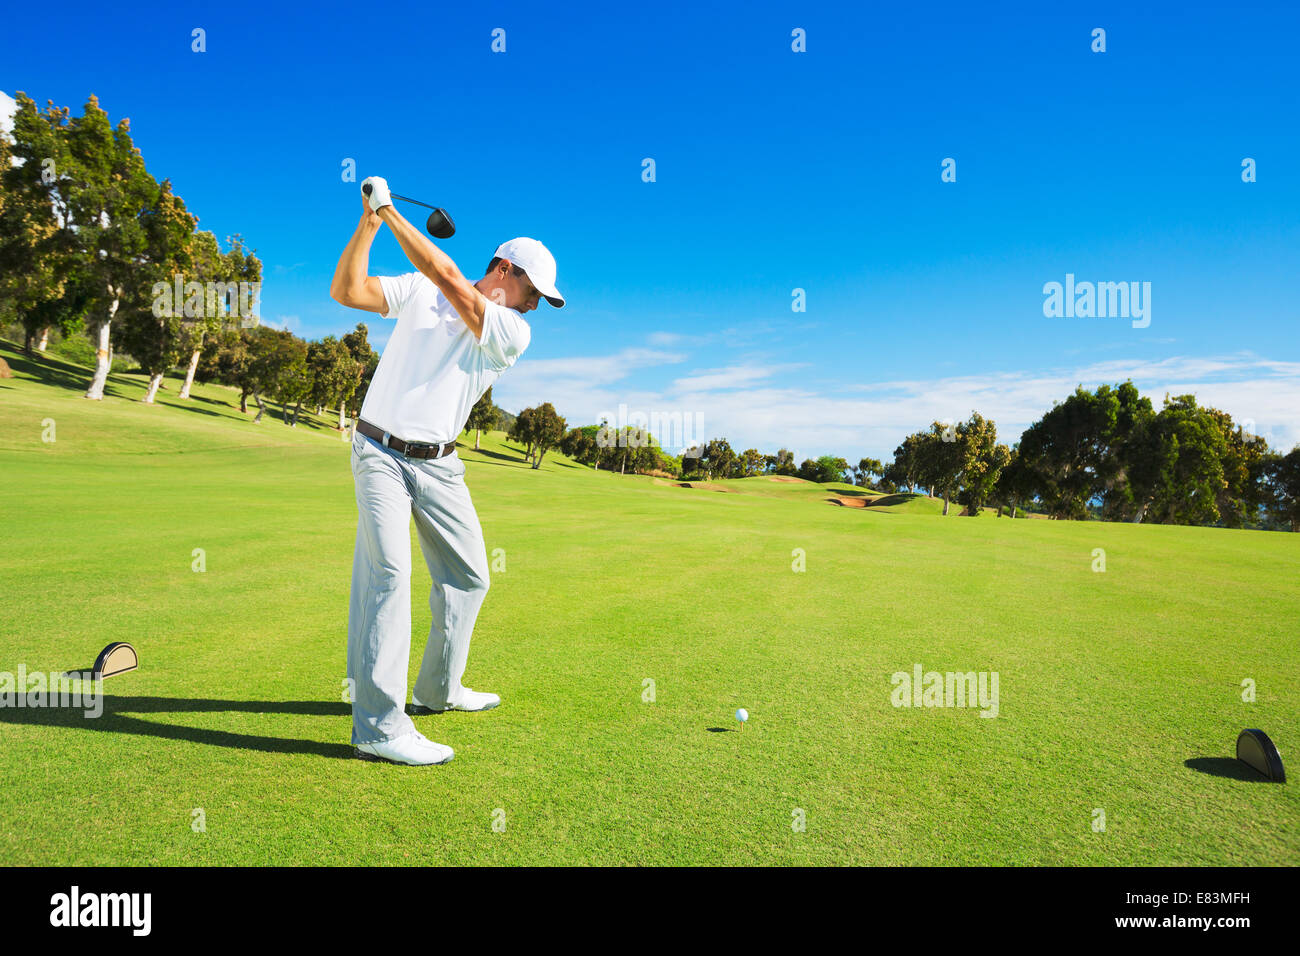 Golf player teeing off. Man hitting golf ball from tee box with driver. - Stock Image